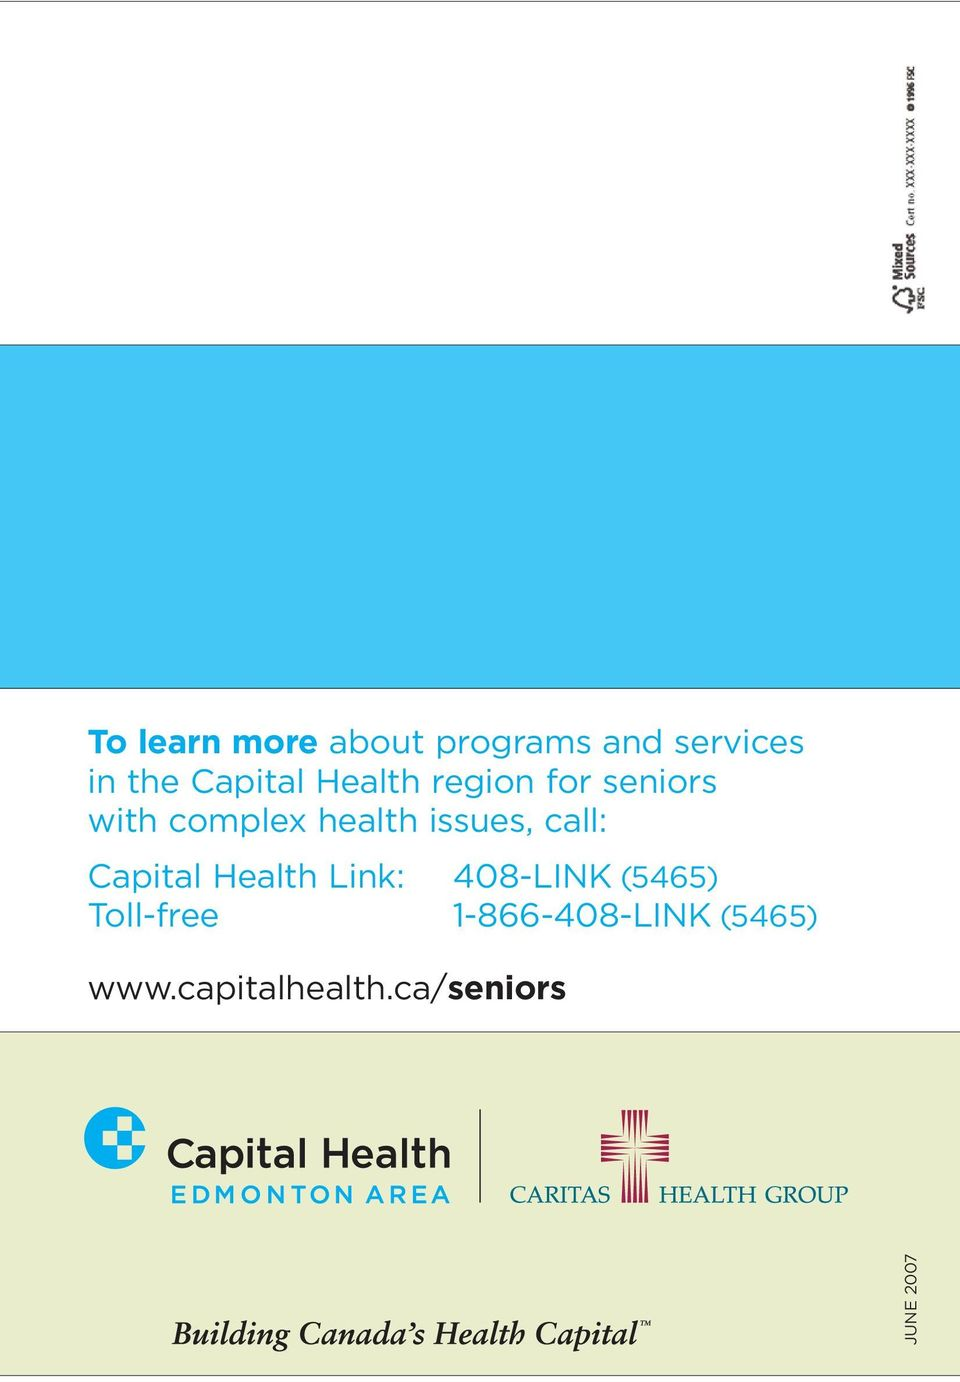 issues, call: Capital Health Link: 408-LINK (5465)